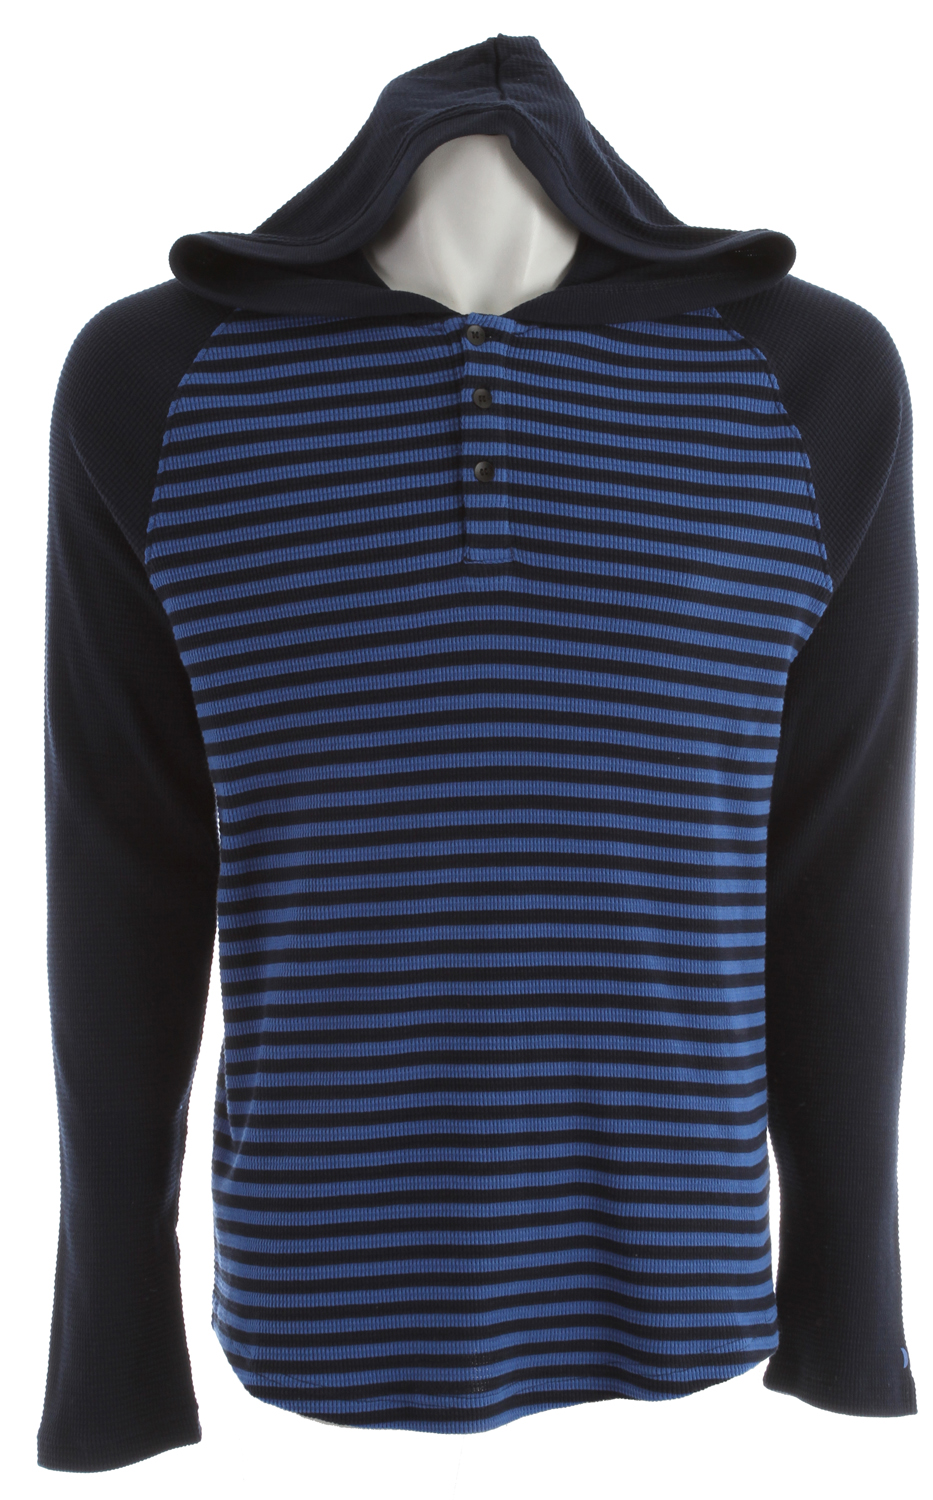 Surf Key Features of the Hurley Dawner L/S Hoodie: Regular Fit 60% Cotton/40% Polyester Longsleeve, striped pullover hooded knit - $31.95